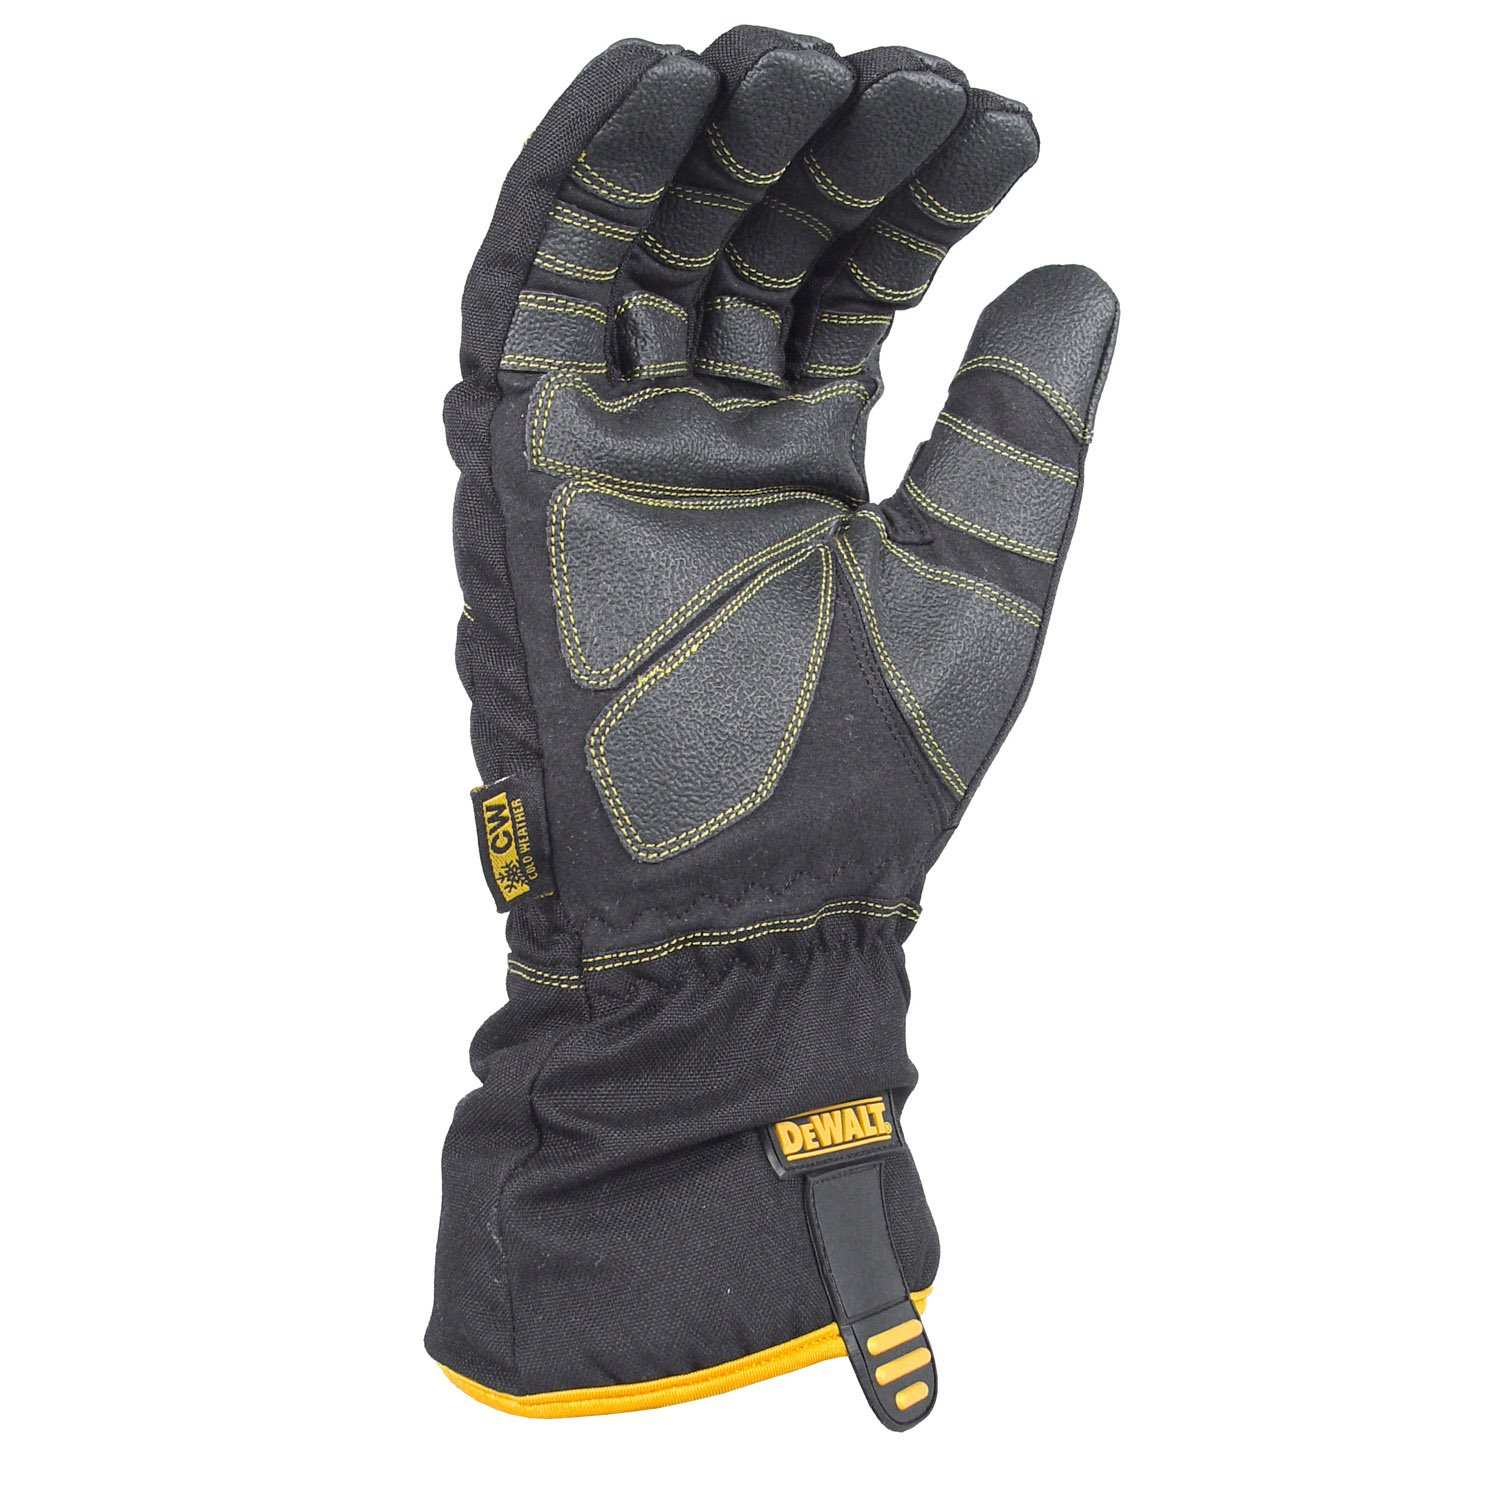 Insulated leather work gloves amazon - Dewalt Dpg750xxl Extreme Condition 100g Insulated Cold Weather Work Glove Xx Large Xxl Insulated Work Gloves Amazon Com